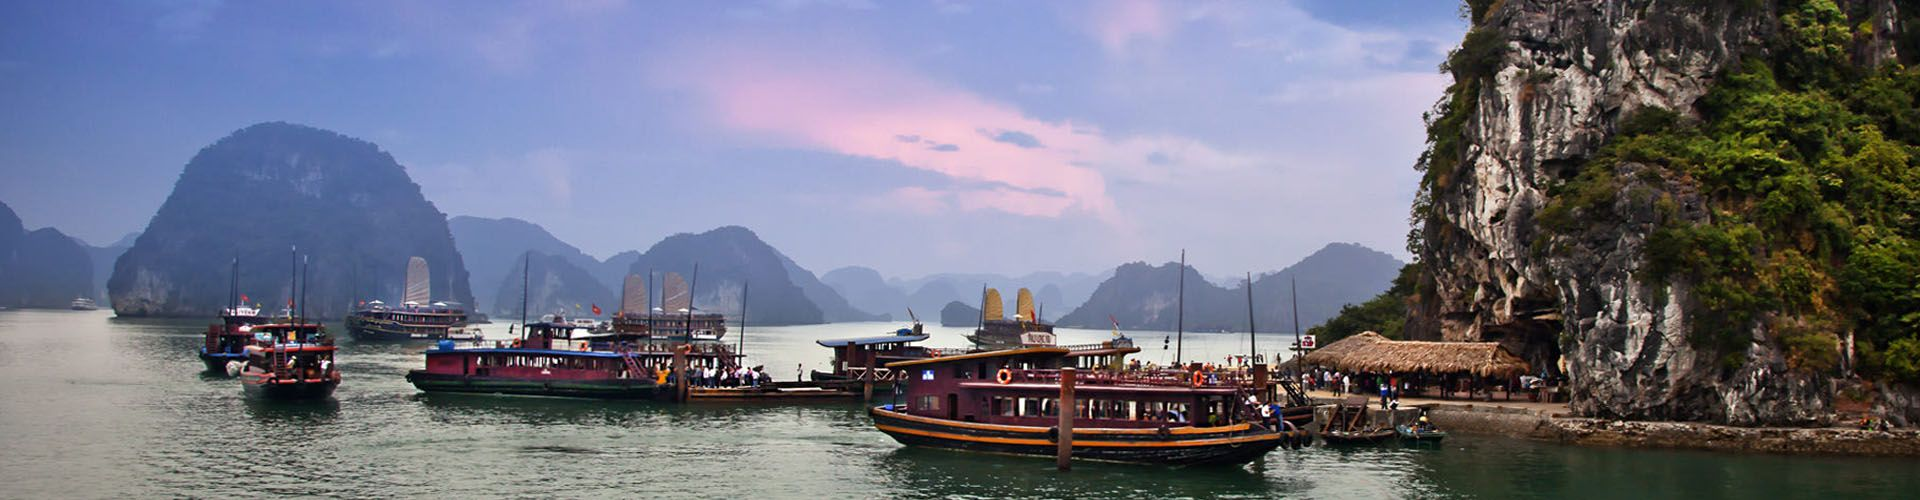 Travel Tips in Halong Bay